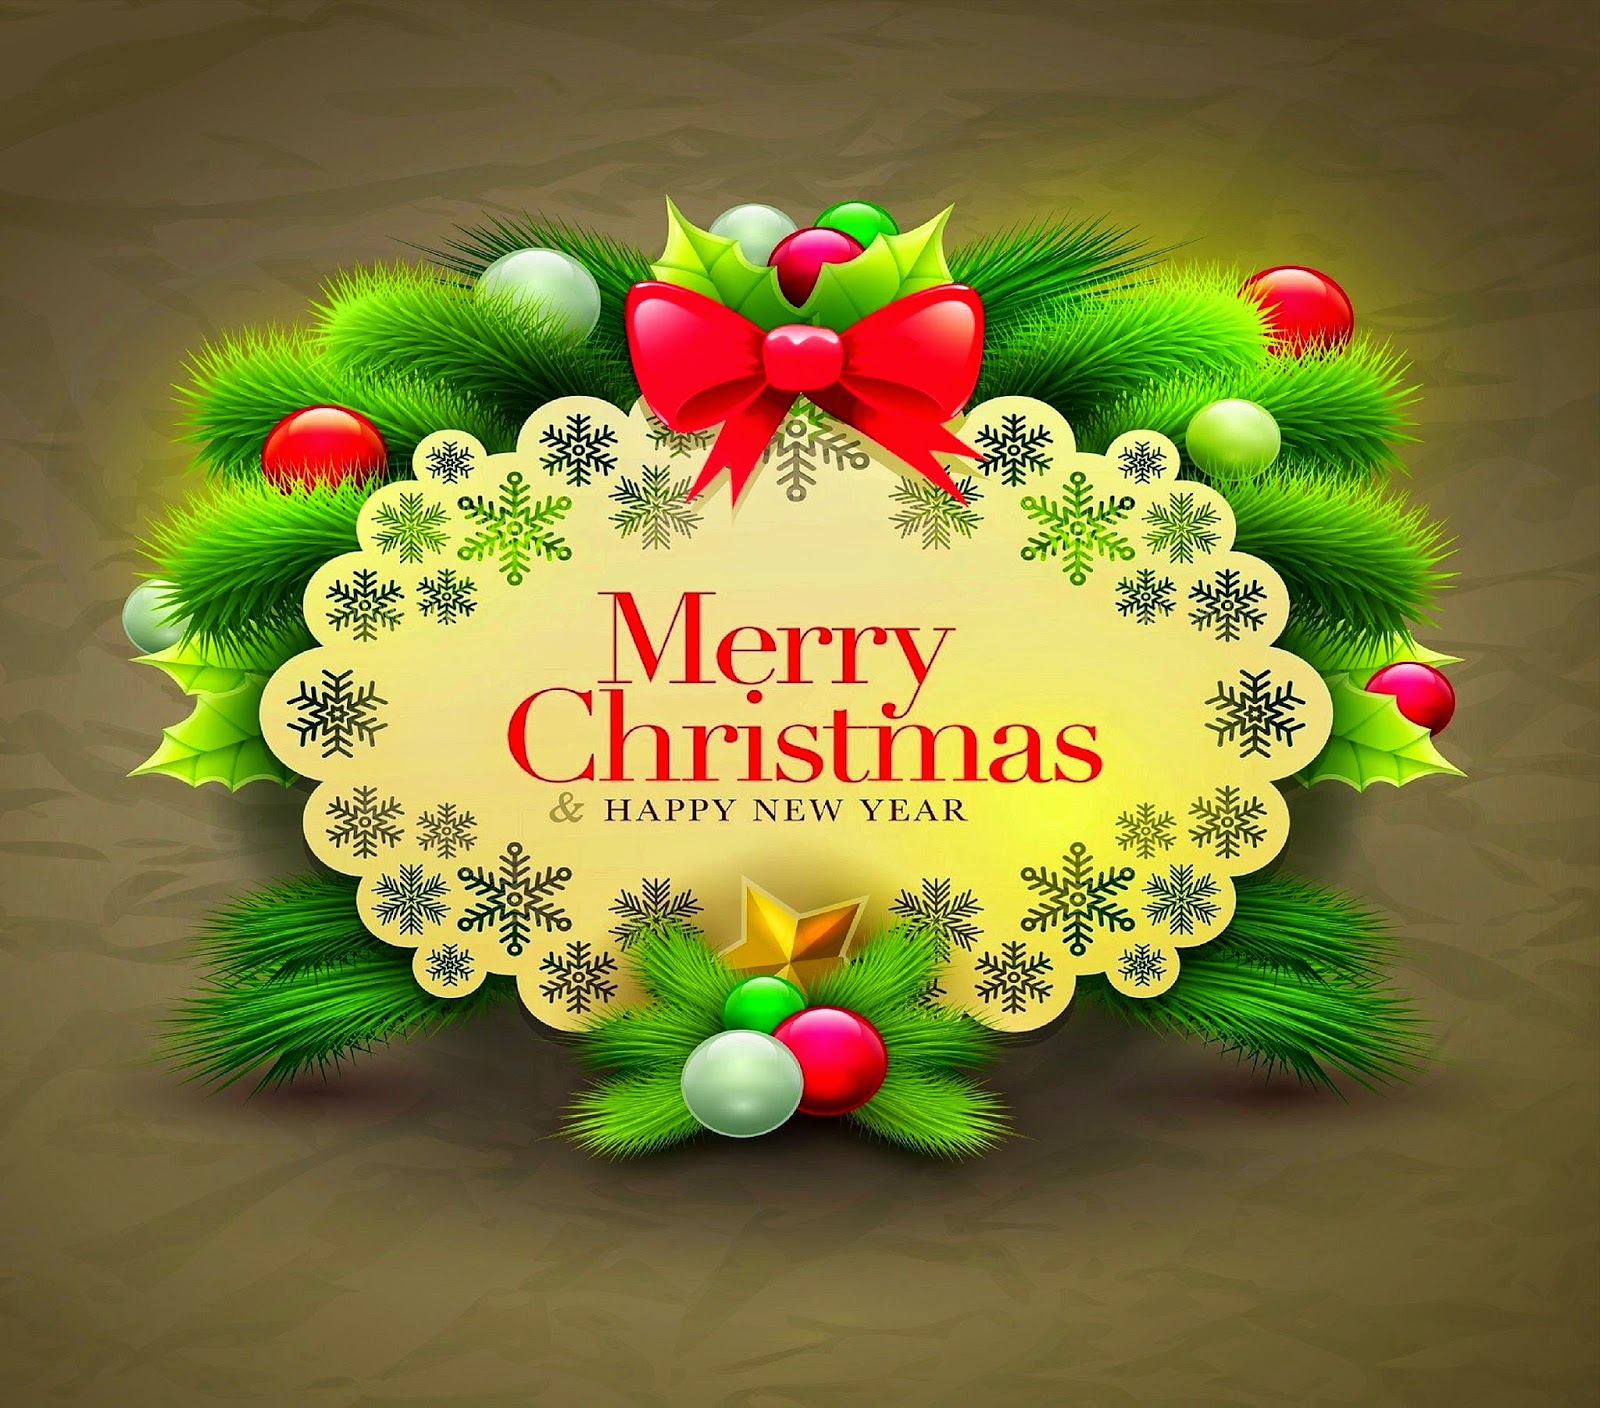 xmas-and-new-year-luxury-design-greeting-card-for-facebook-sharing.jpg